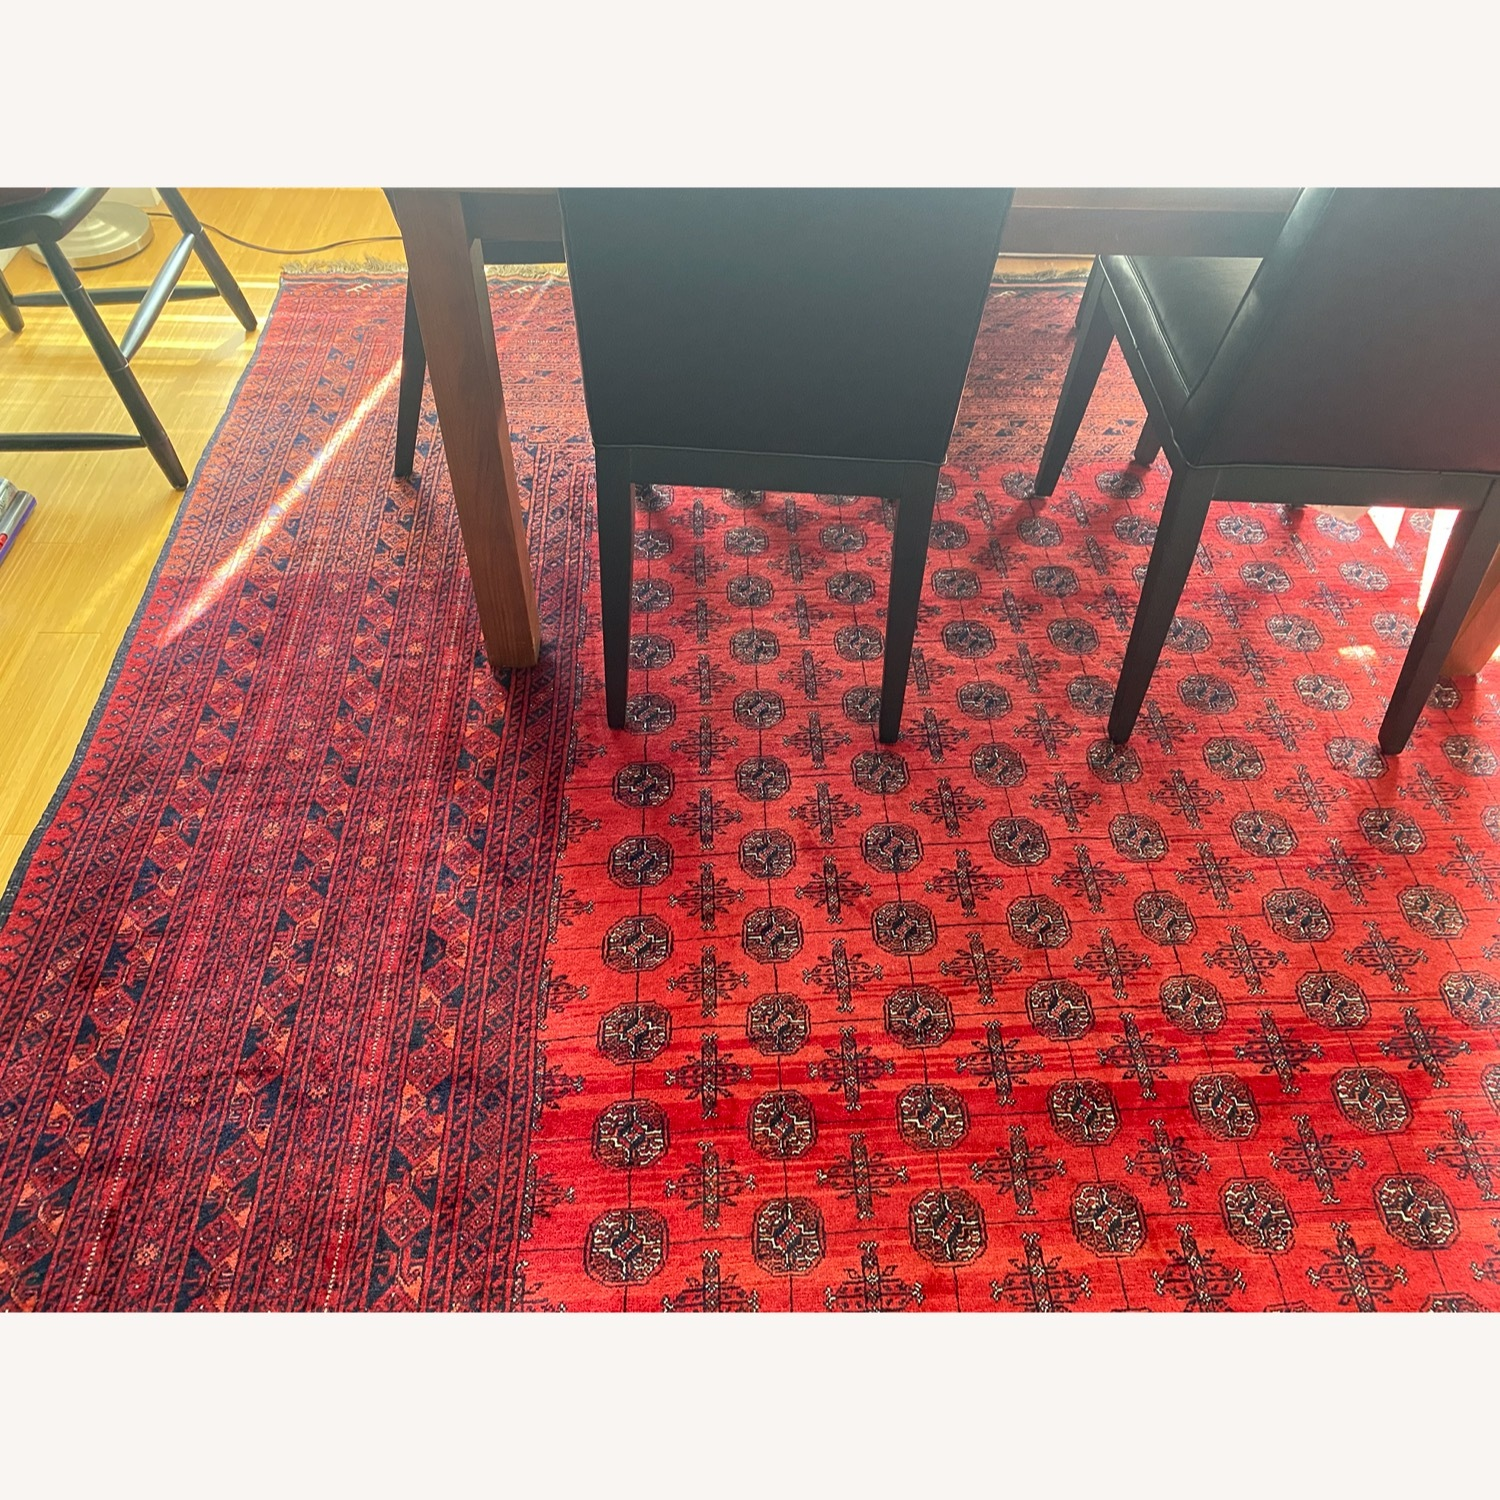 Authentic Handwoven Rug from Afghanistan - image-2